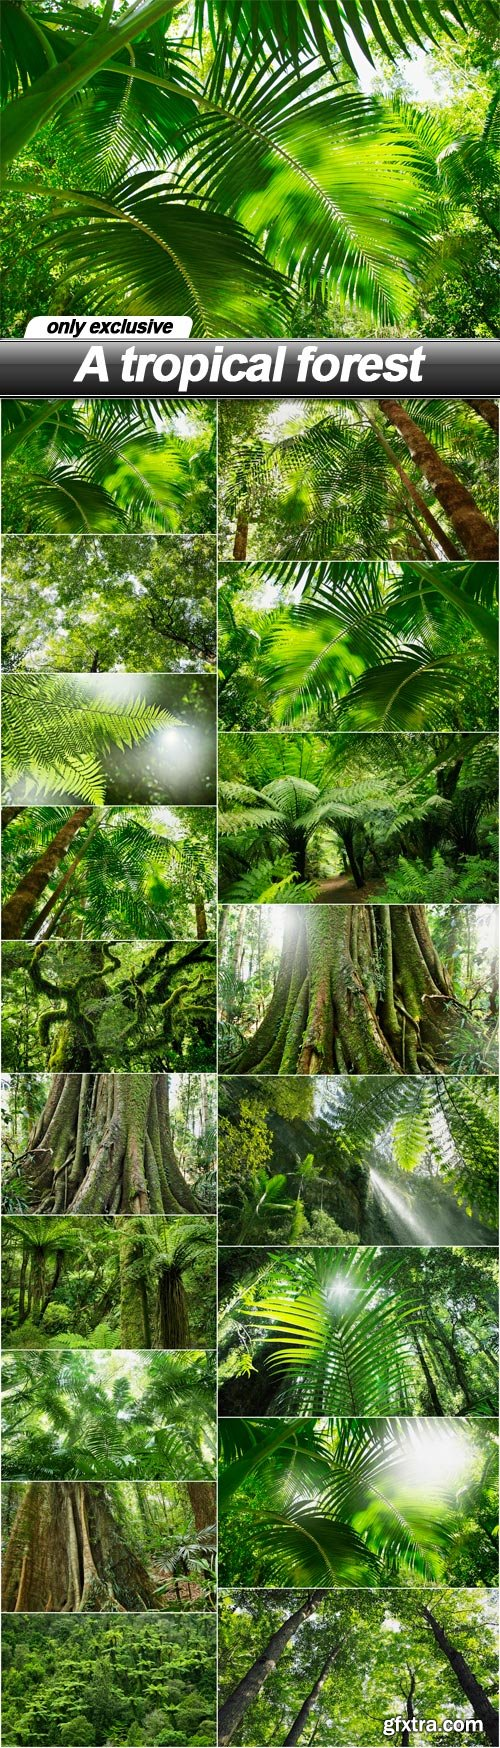 A tropical forest - 18 UHQ JPEG